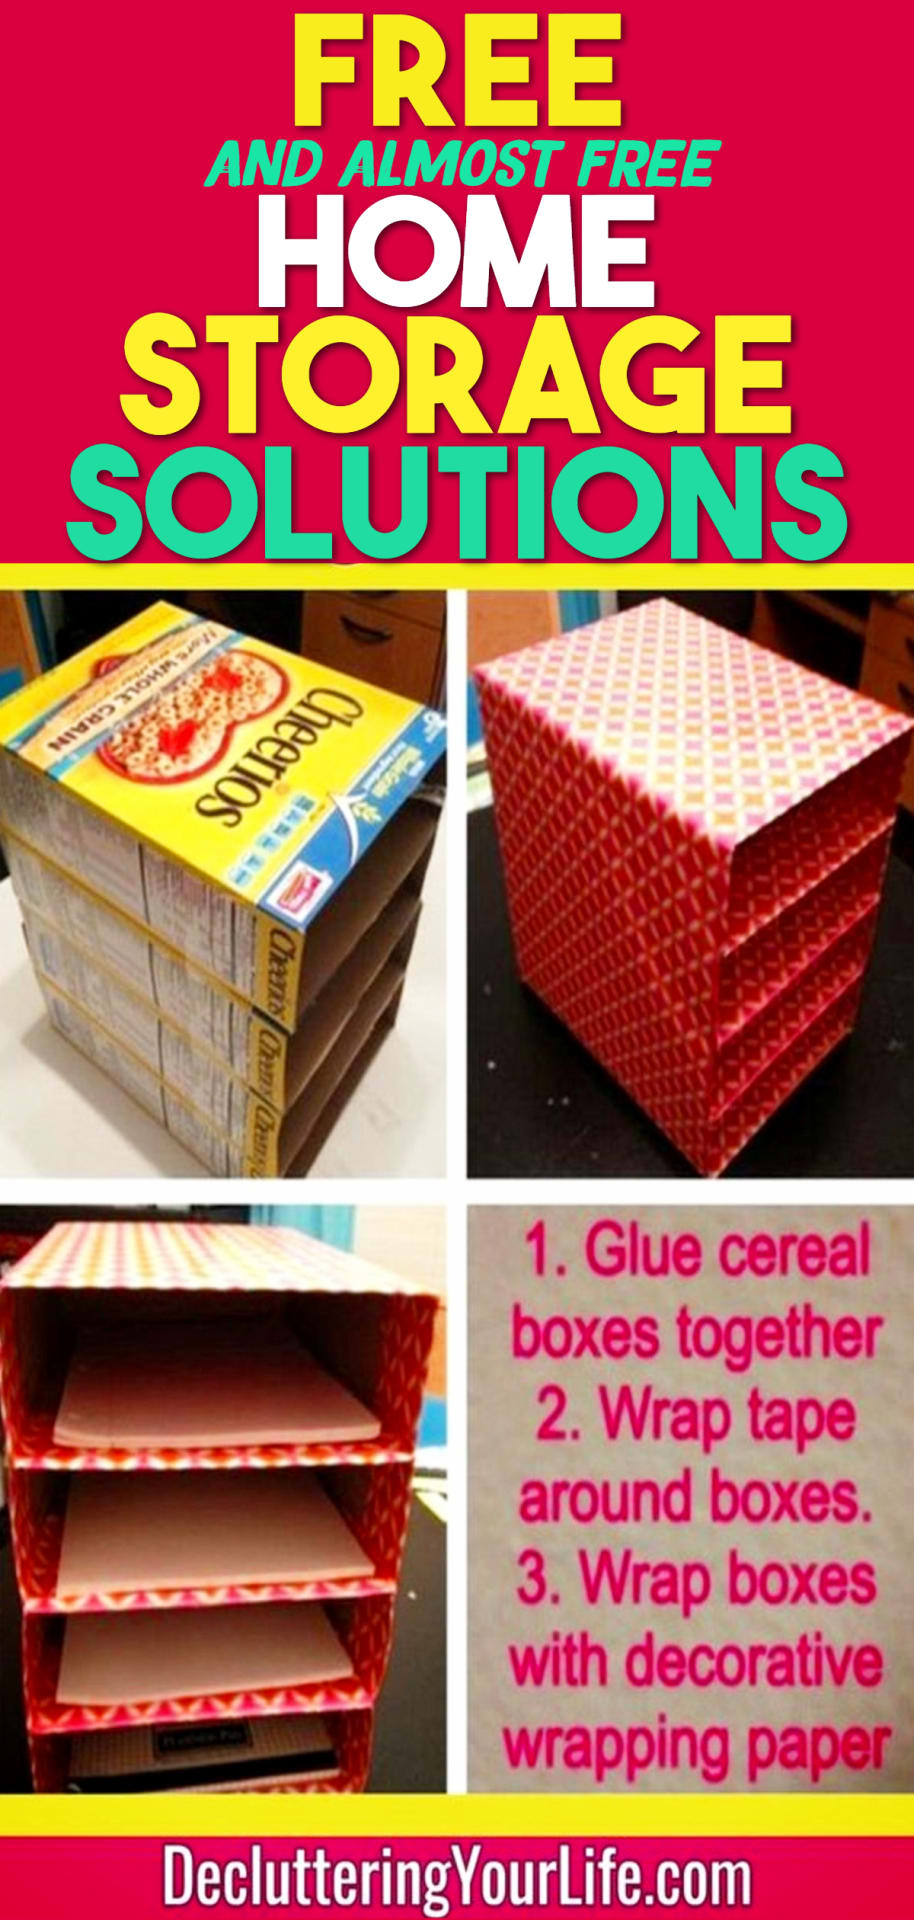 Free Home Organization Storage Solutions - Cheap Ways To Organize Your Home On a Budget - 33 Free (and ALMOST free) Home Organization Hacks To Get Organized on a Tight Budget - Budget-friendly organization tips for the frugal organizer for saving money while you unclutter your home and declutter your life